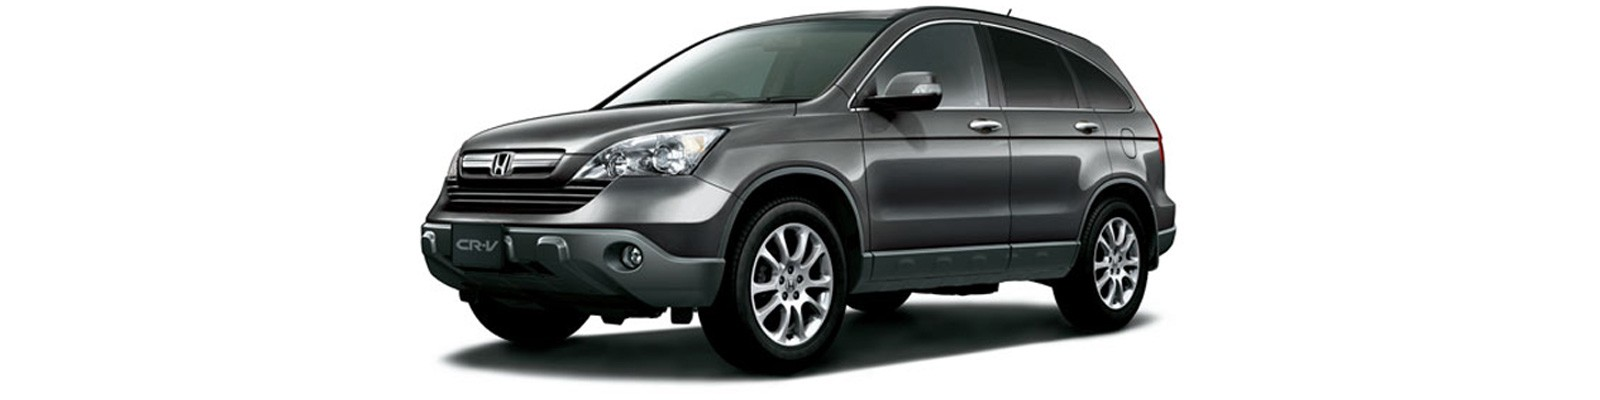 Honda Accessories Crv 2010 All The Best Accessories In 2018